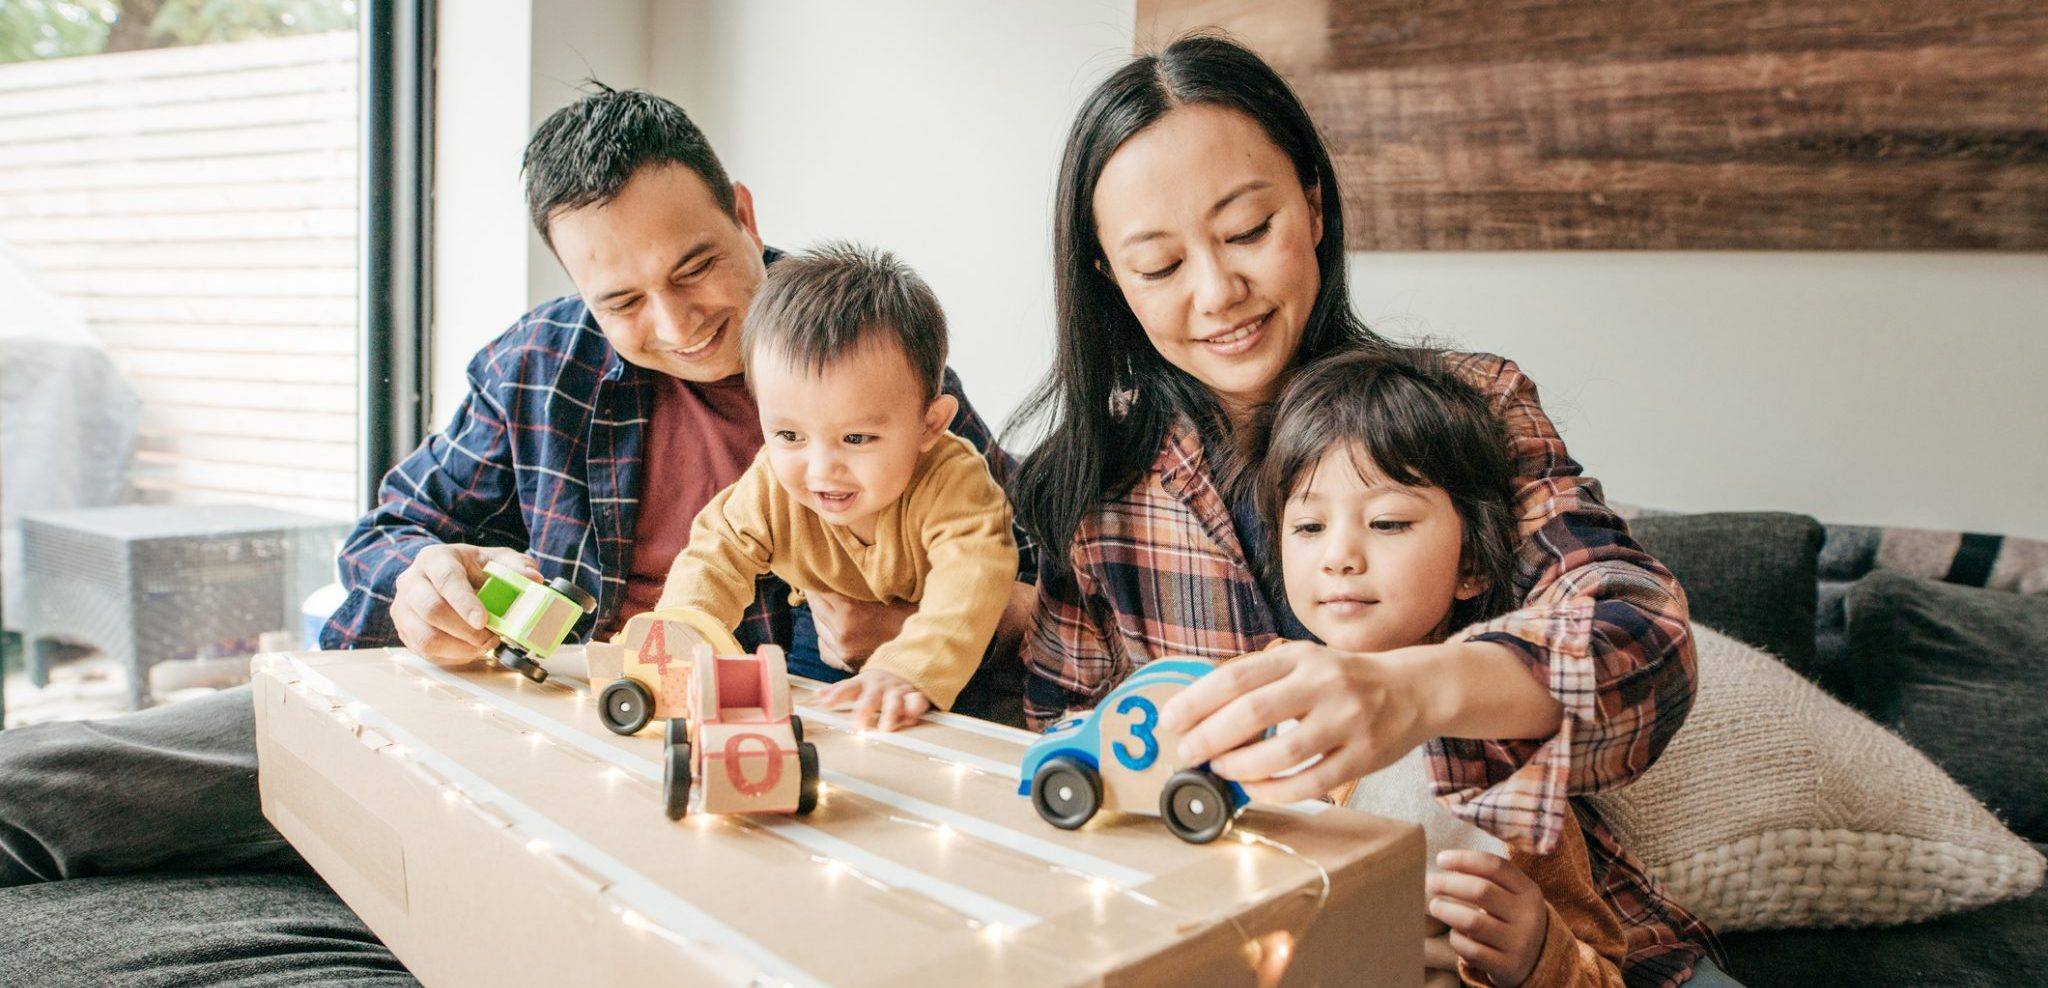 The Busy Parents Guide to Keeping the Kids Busy at Home